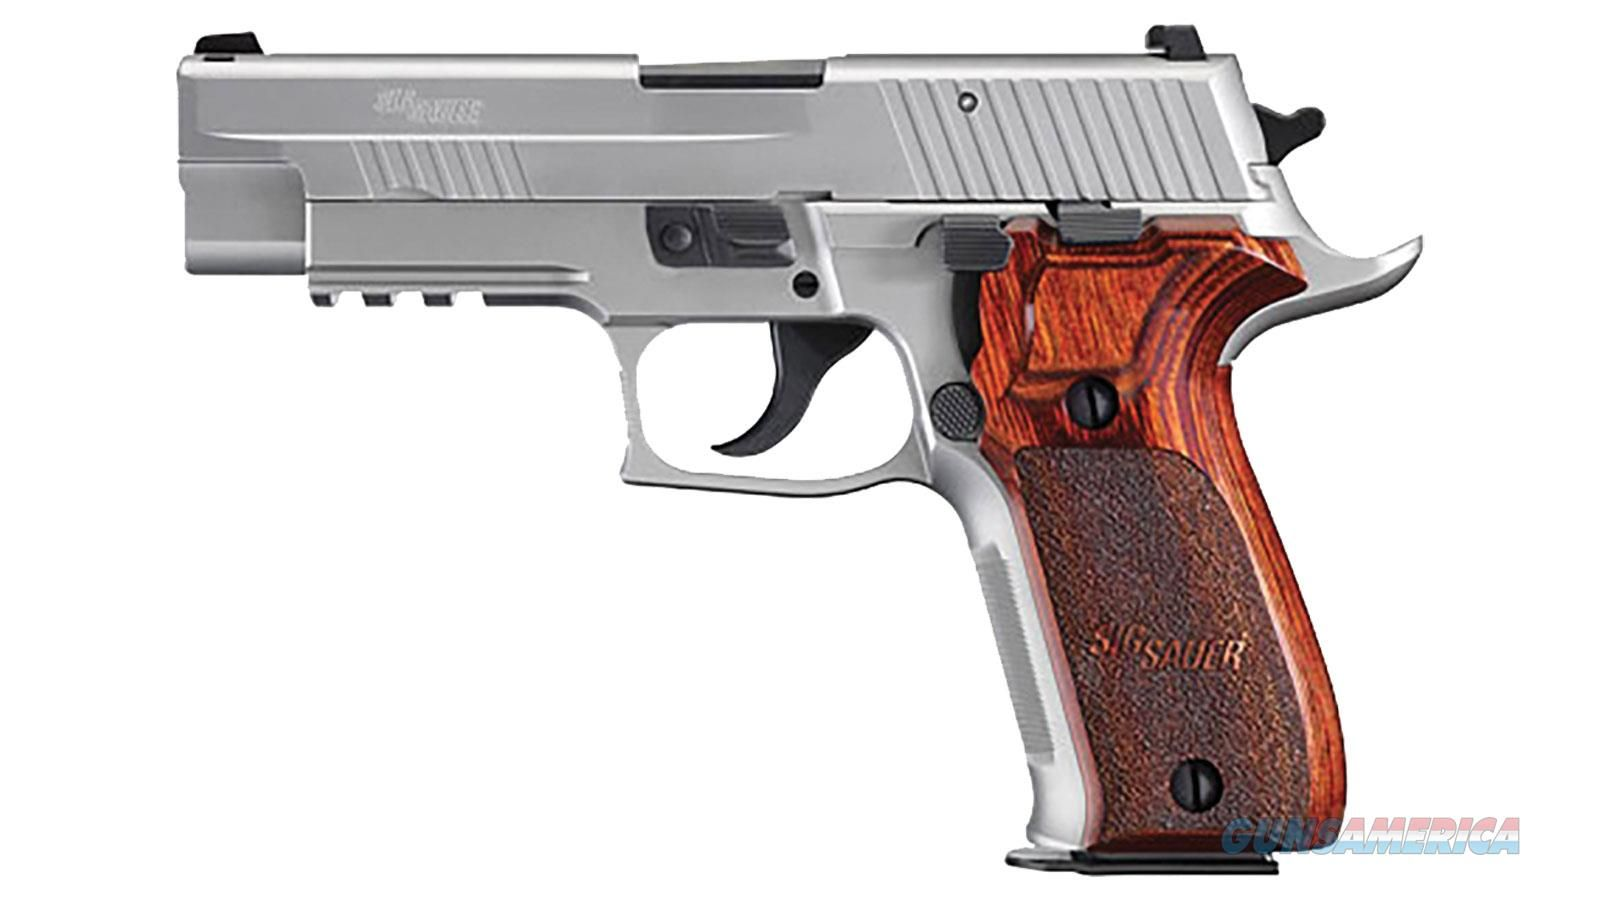 SIG SAUER P226R ELITE 9MM 15RD SS N/S E26R-9-SSE  Guns > Pistols > Sig - Sauer/Sigarms Pistols > P226